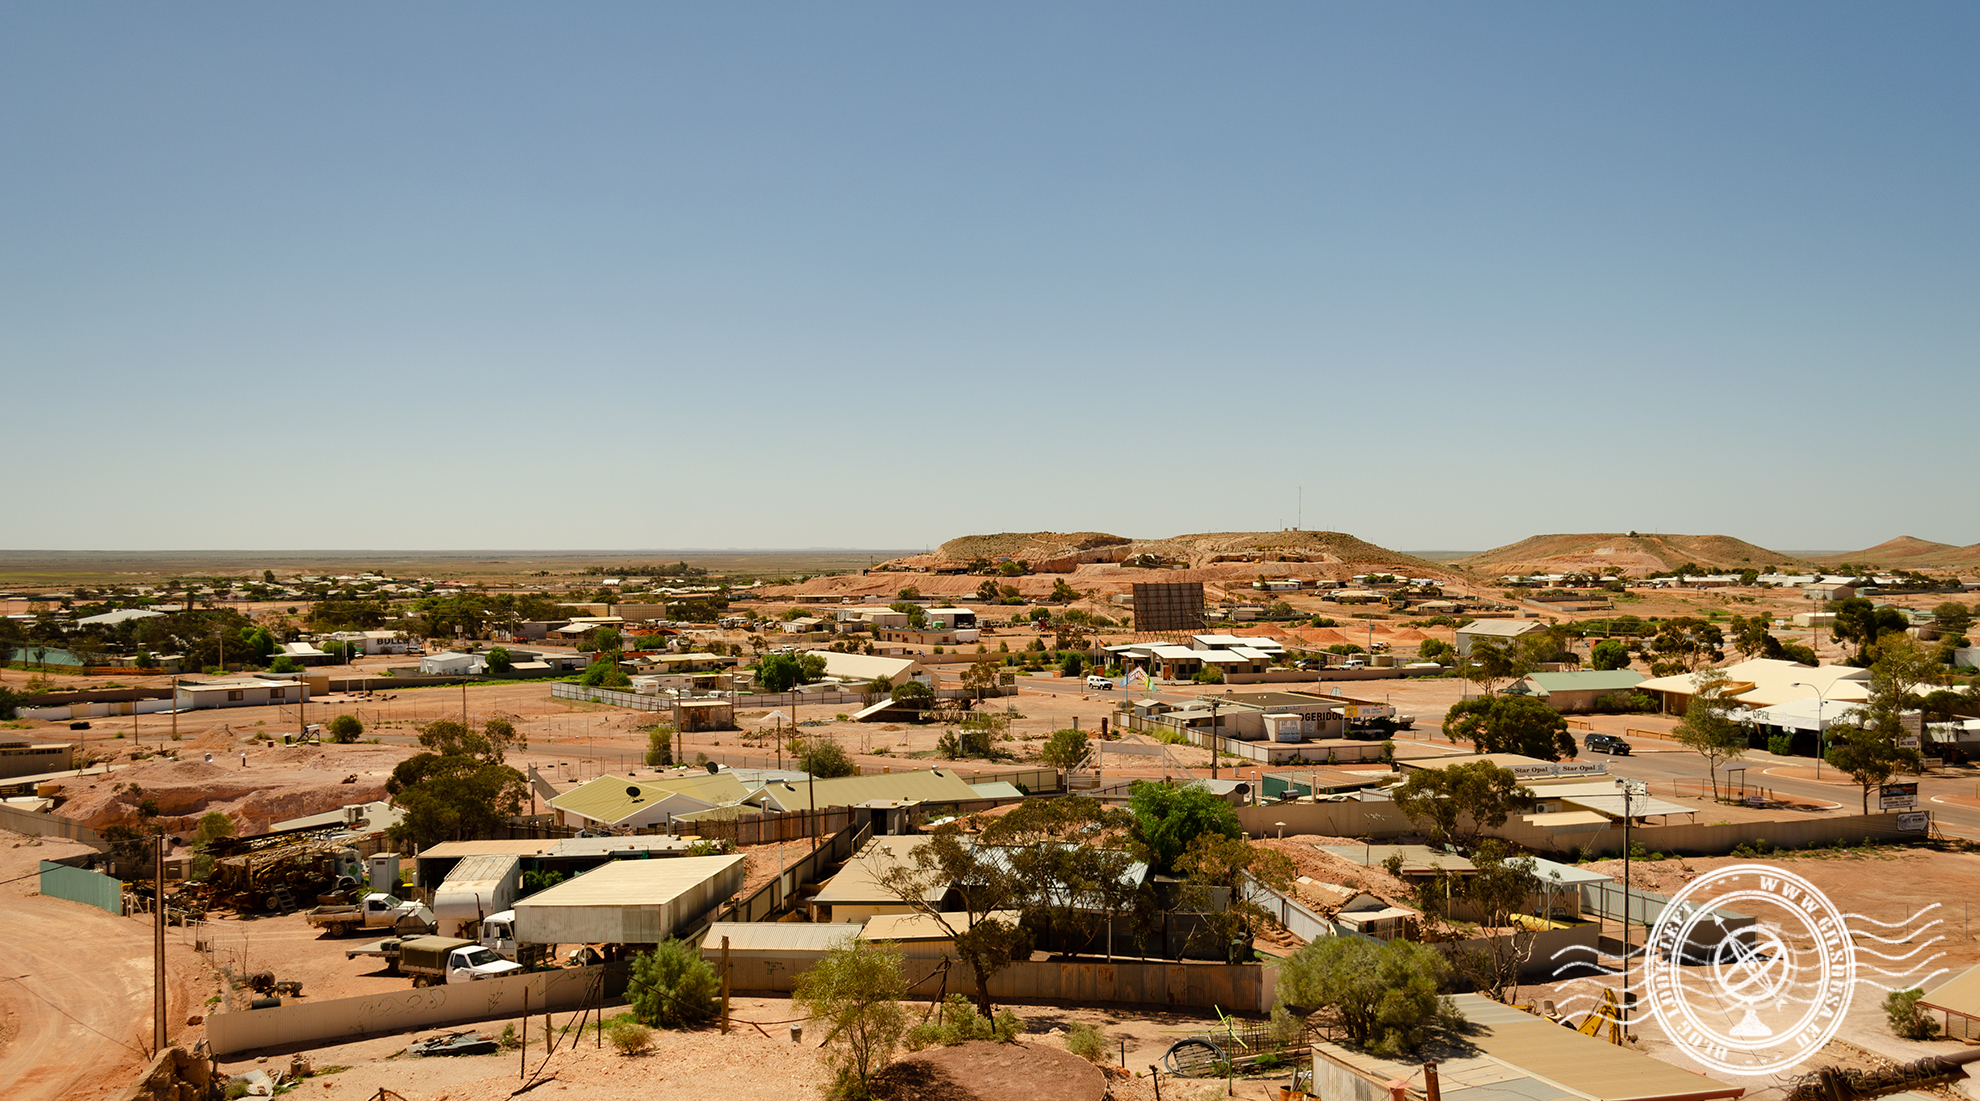 Coober Pedy, famous for the opals mines in the center of Australia